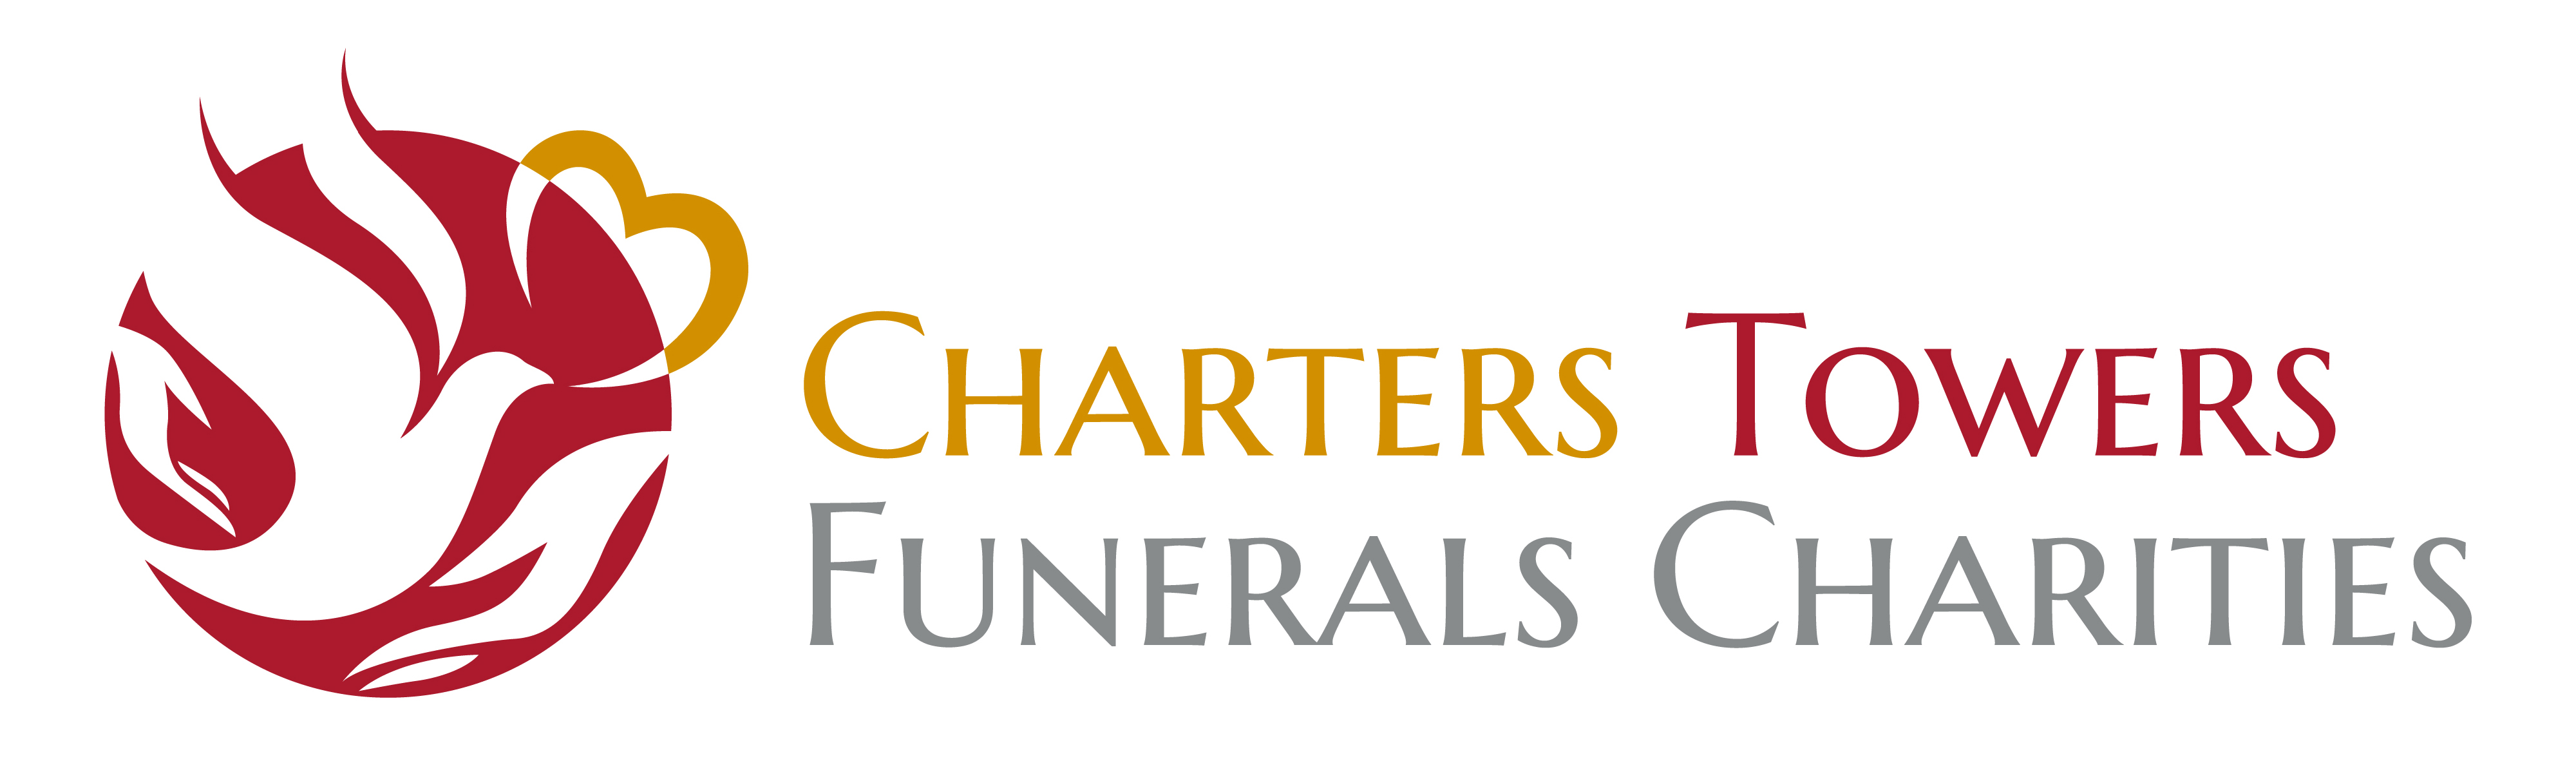 Charters Towers Funerals Charities